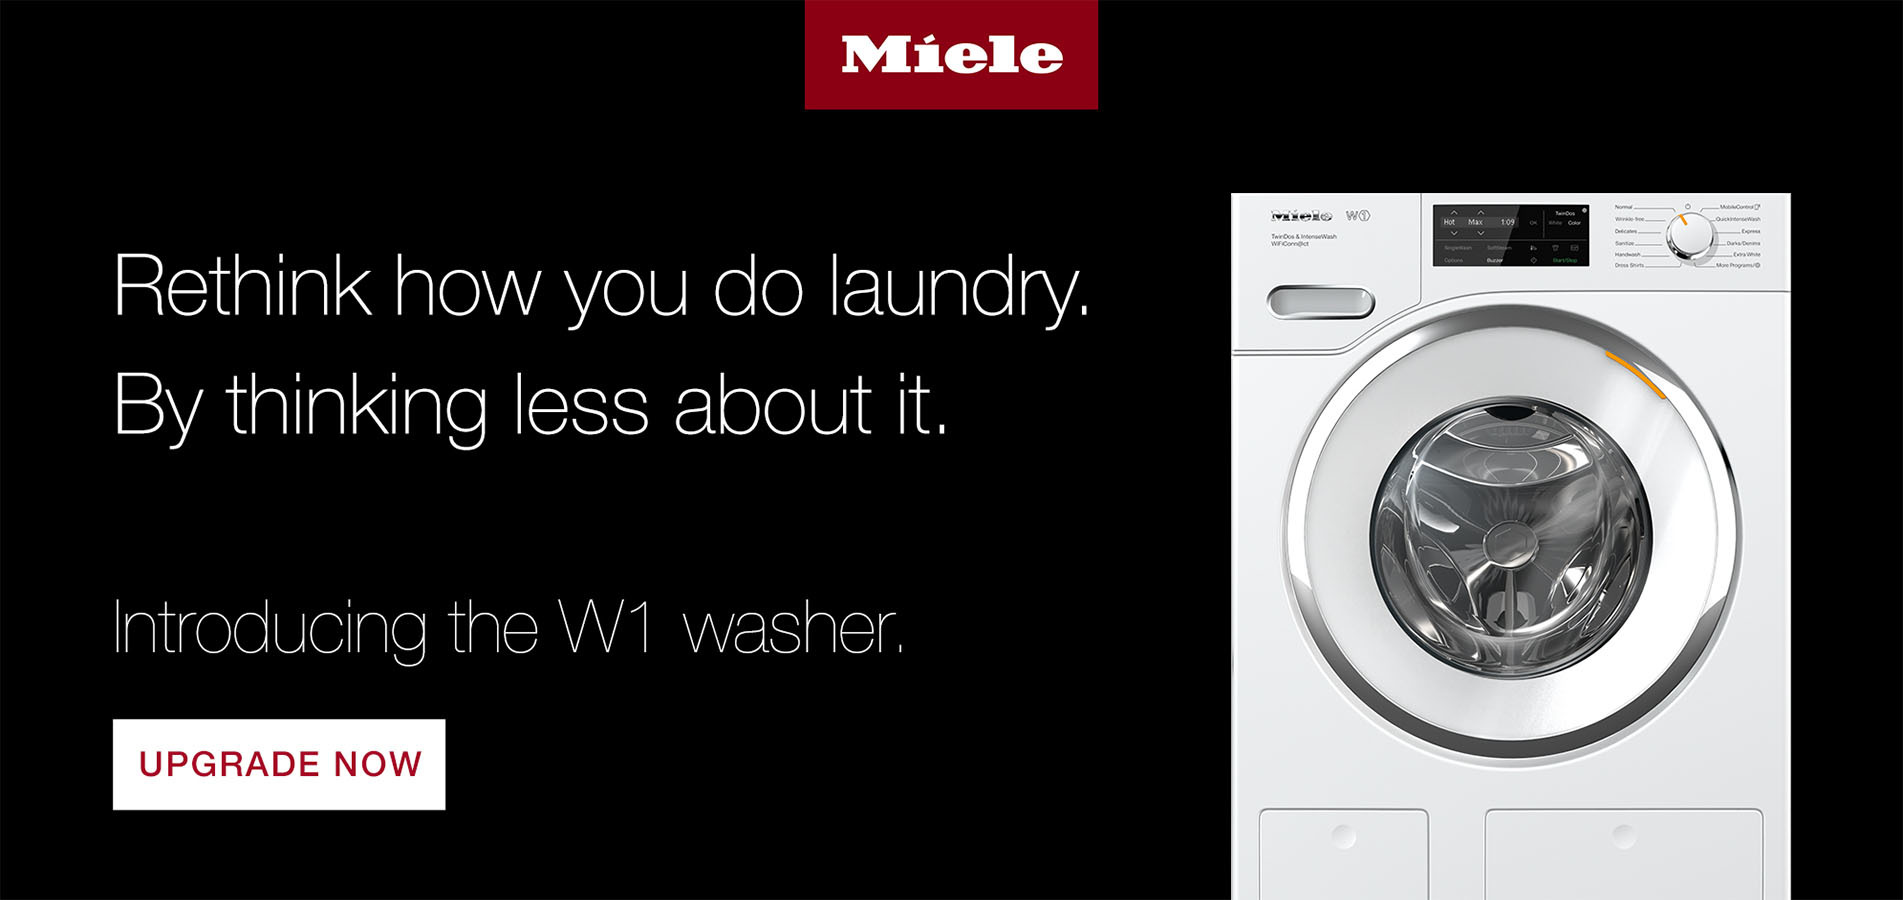 Introducing the W1